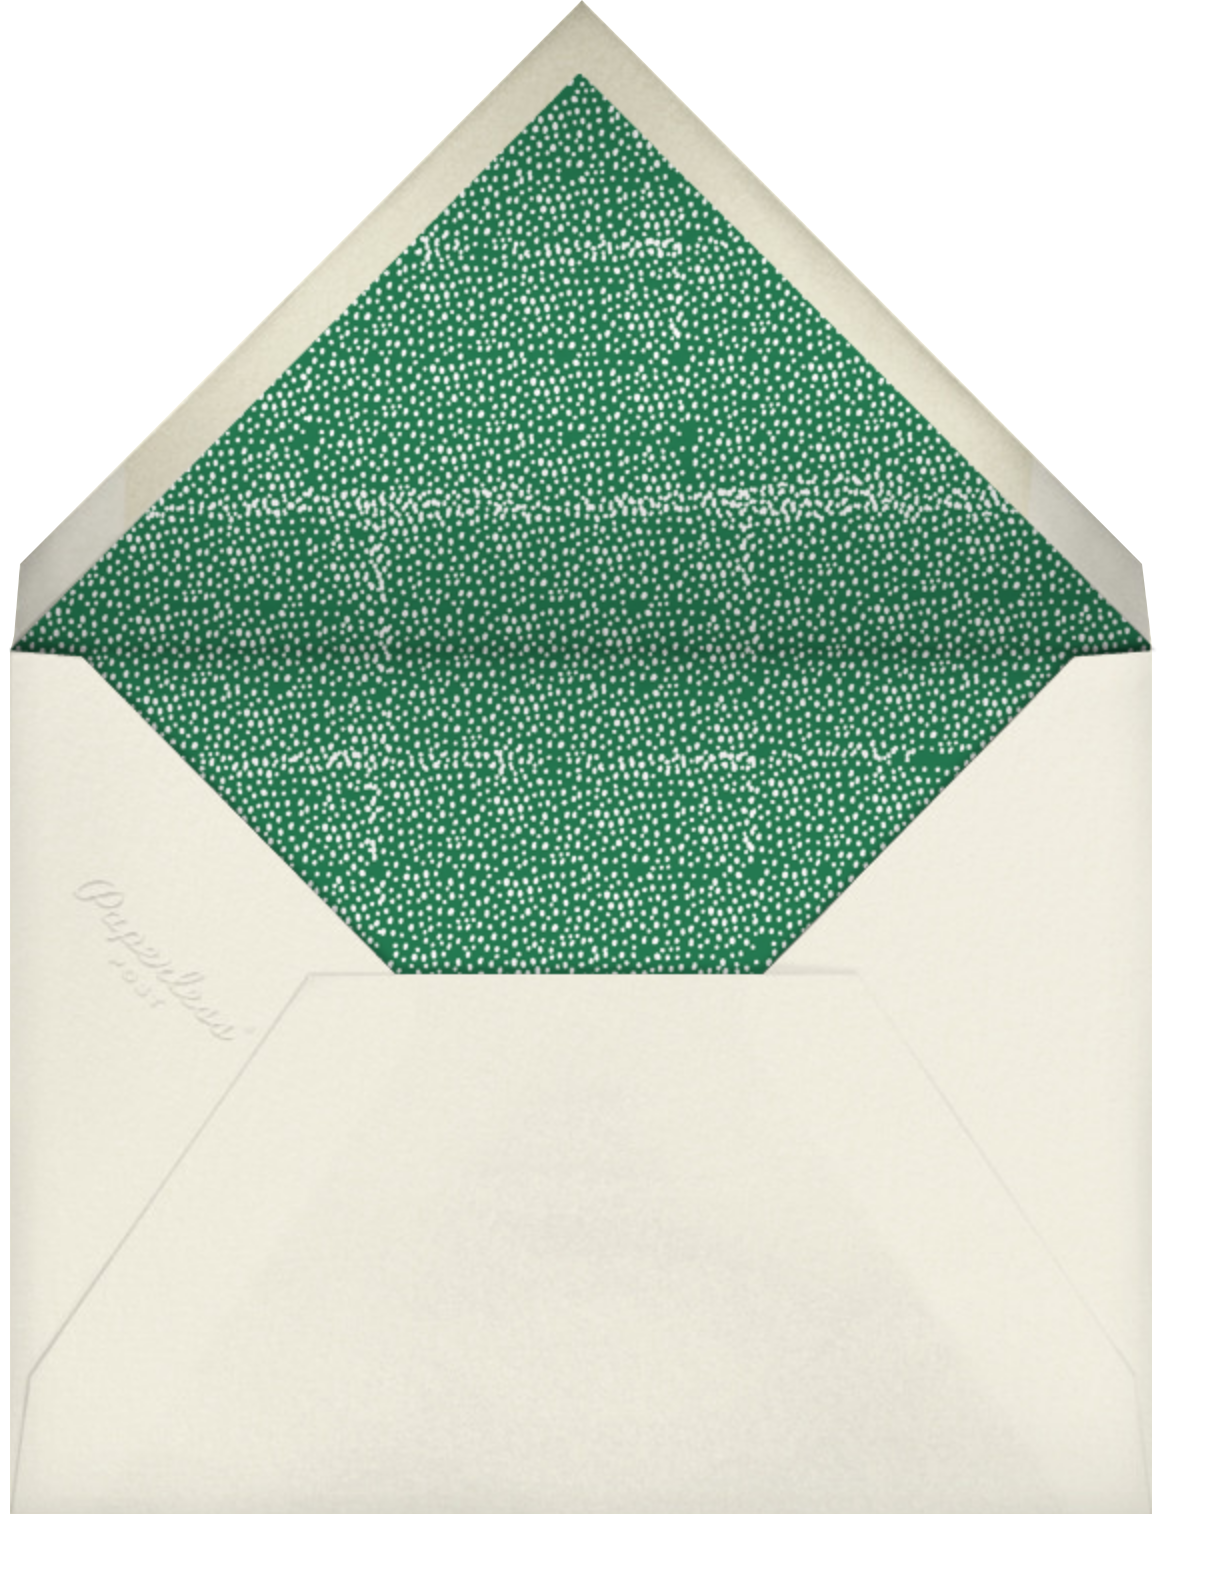 Balancing Act - Mr. Boddington's Studio - Christmas party - envelope back